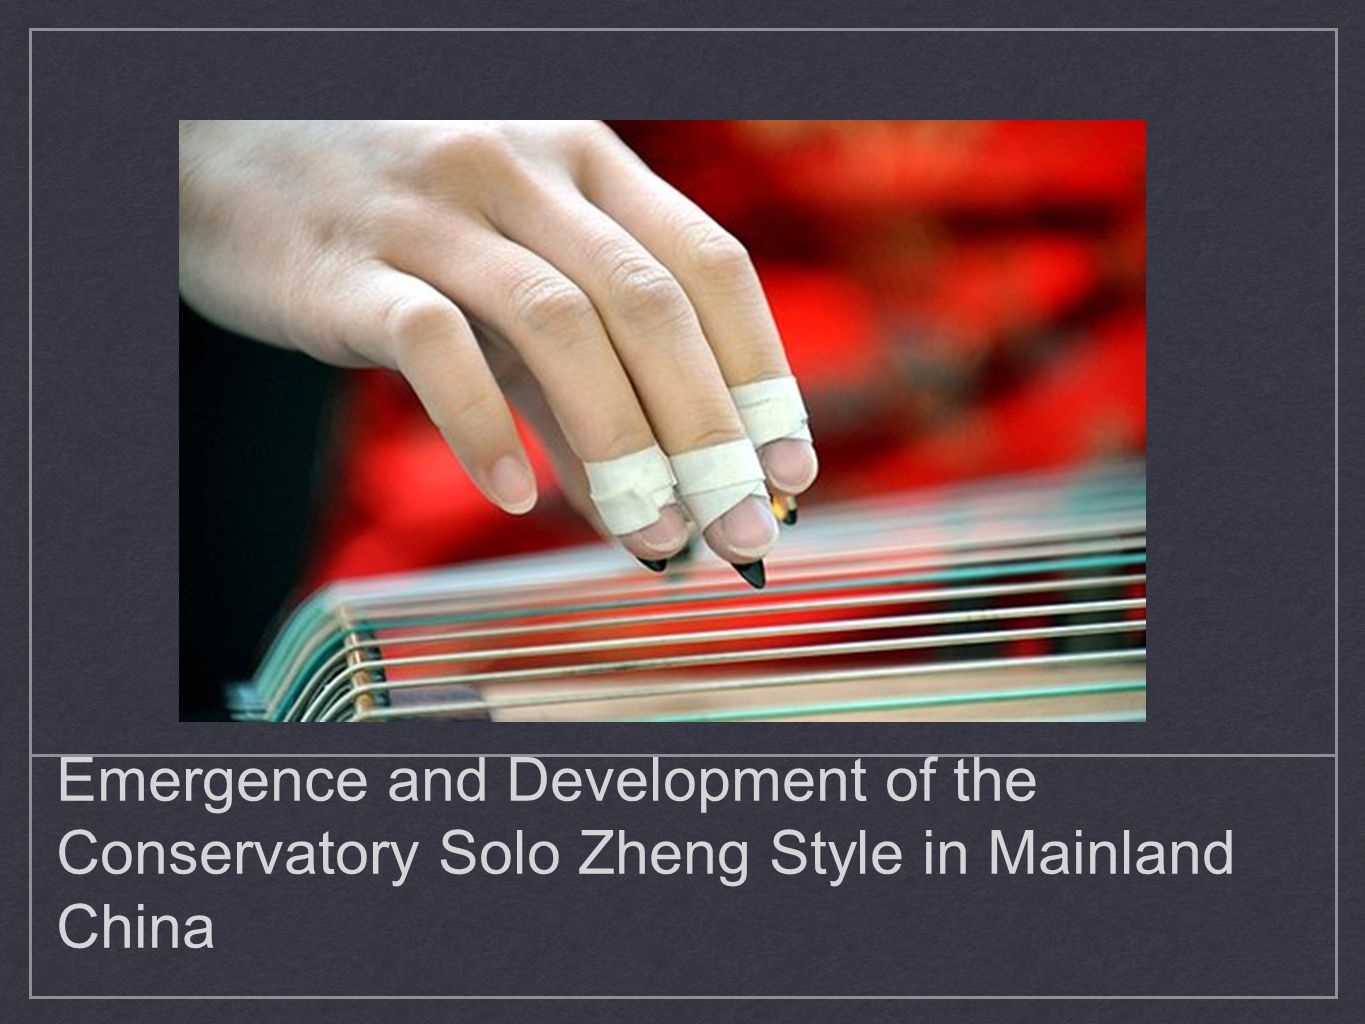 Emergence and Development of the Conservatory Solo Zheng Style in Mainland China